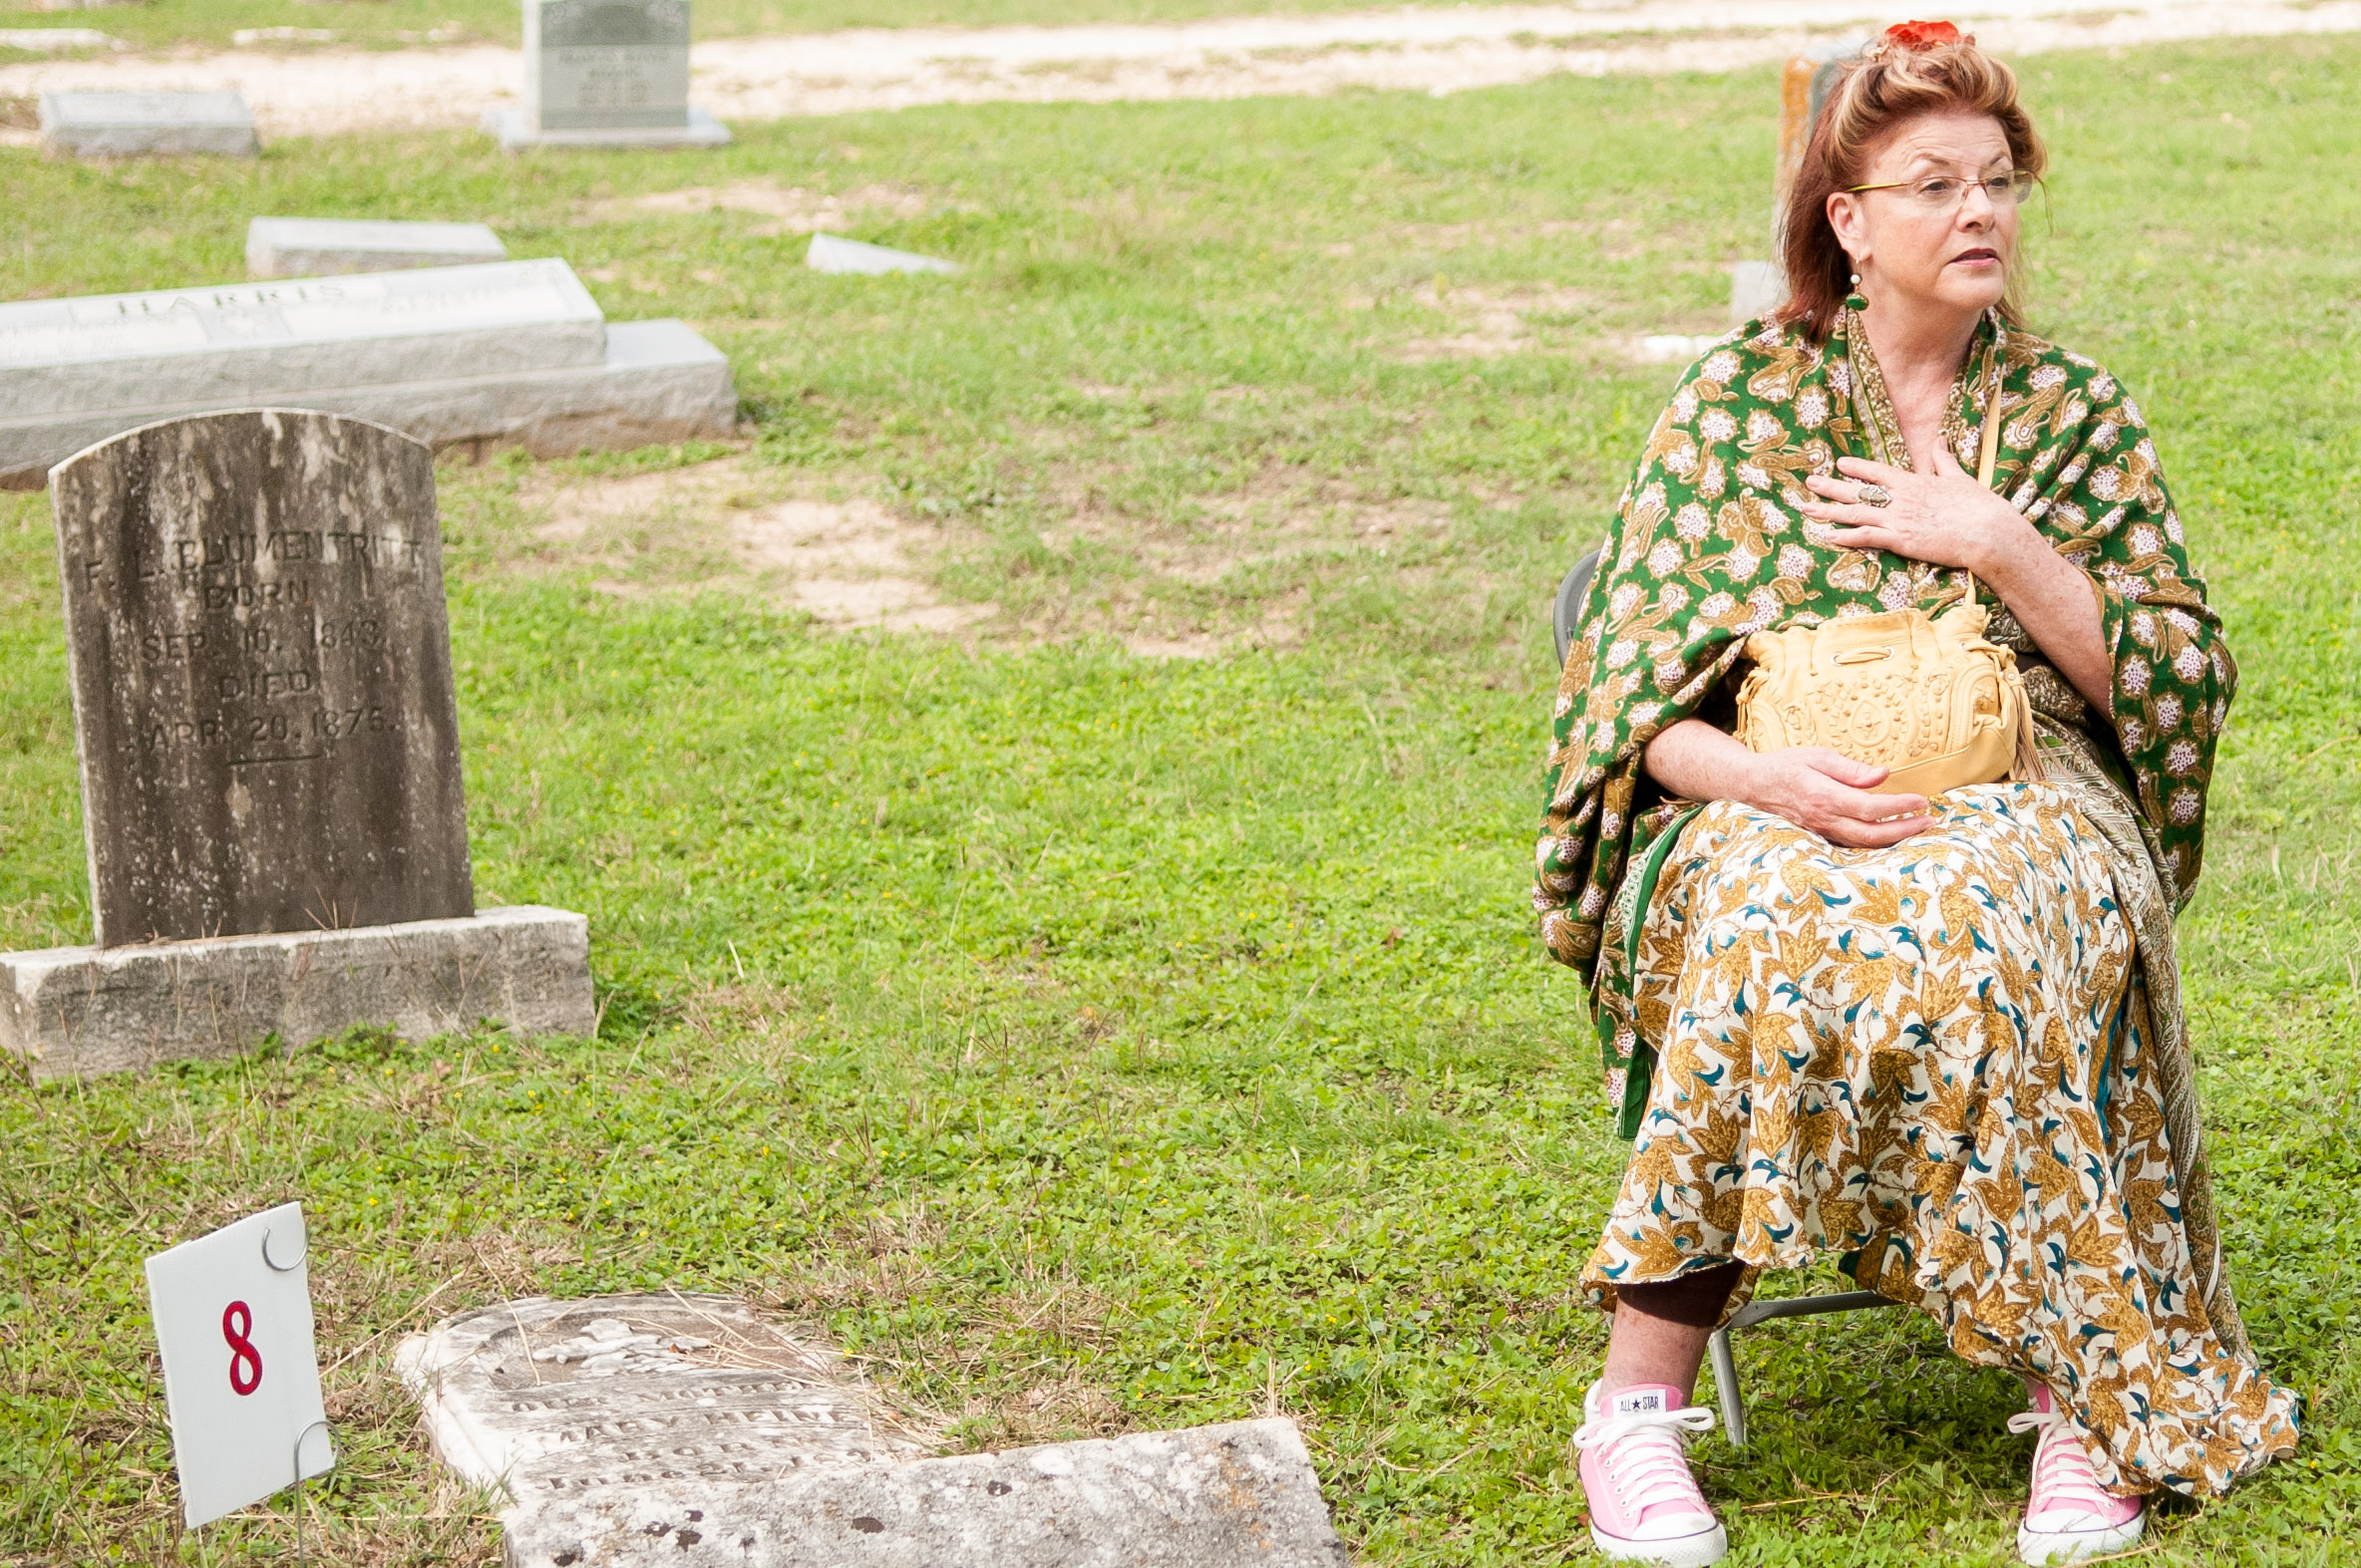 At the eighth and final stop on the tour, a storyteller shares her rehearsed story acting as the person buried at that grave. Photo by Skylar Isdale